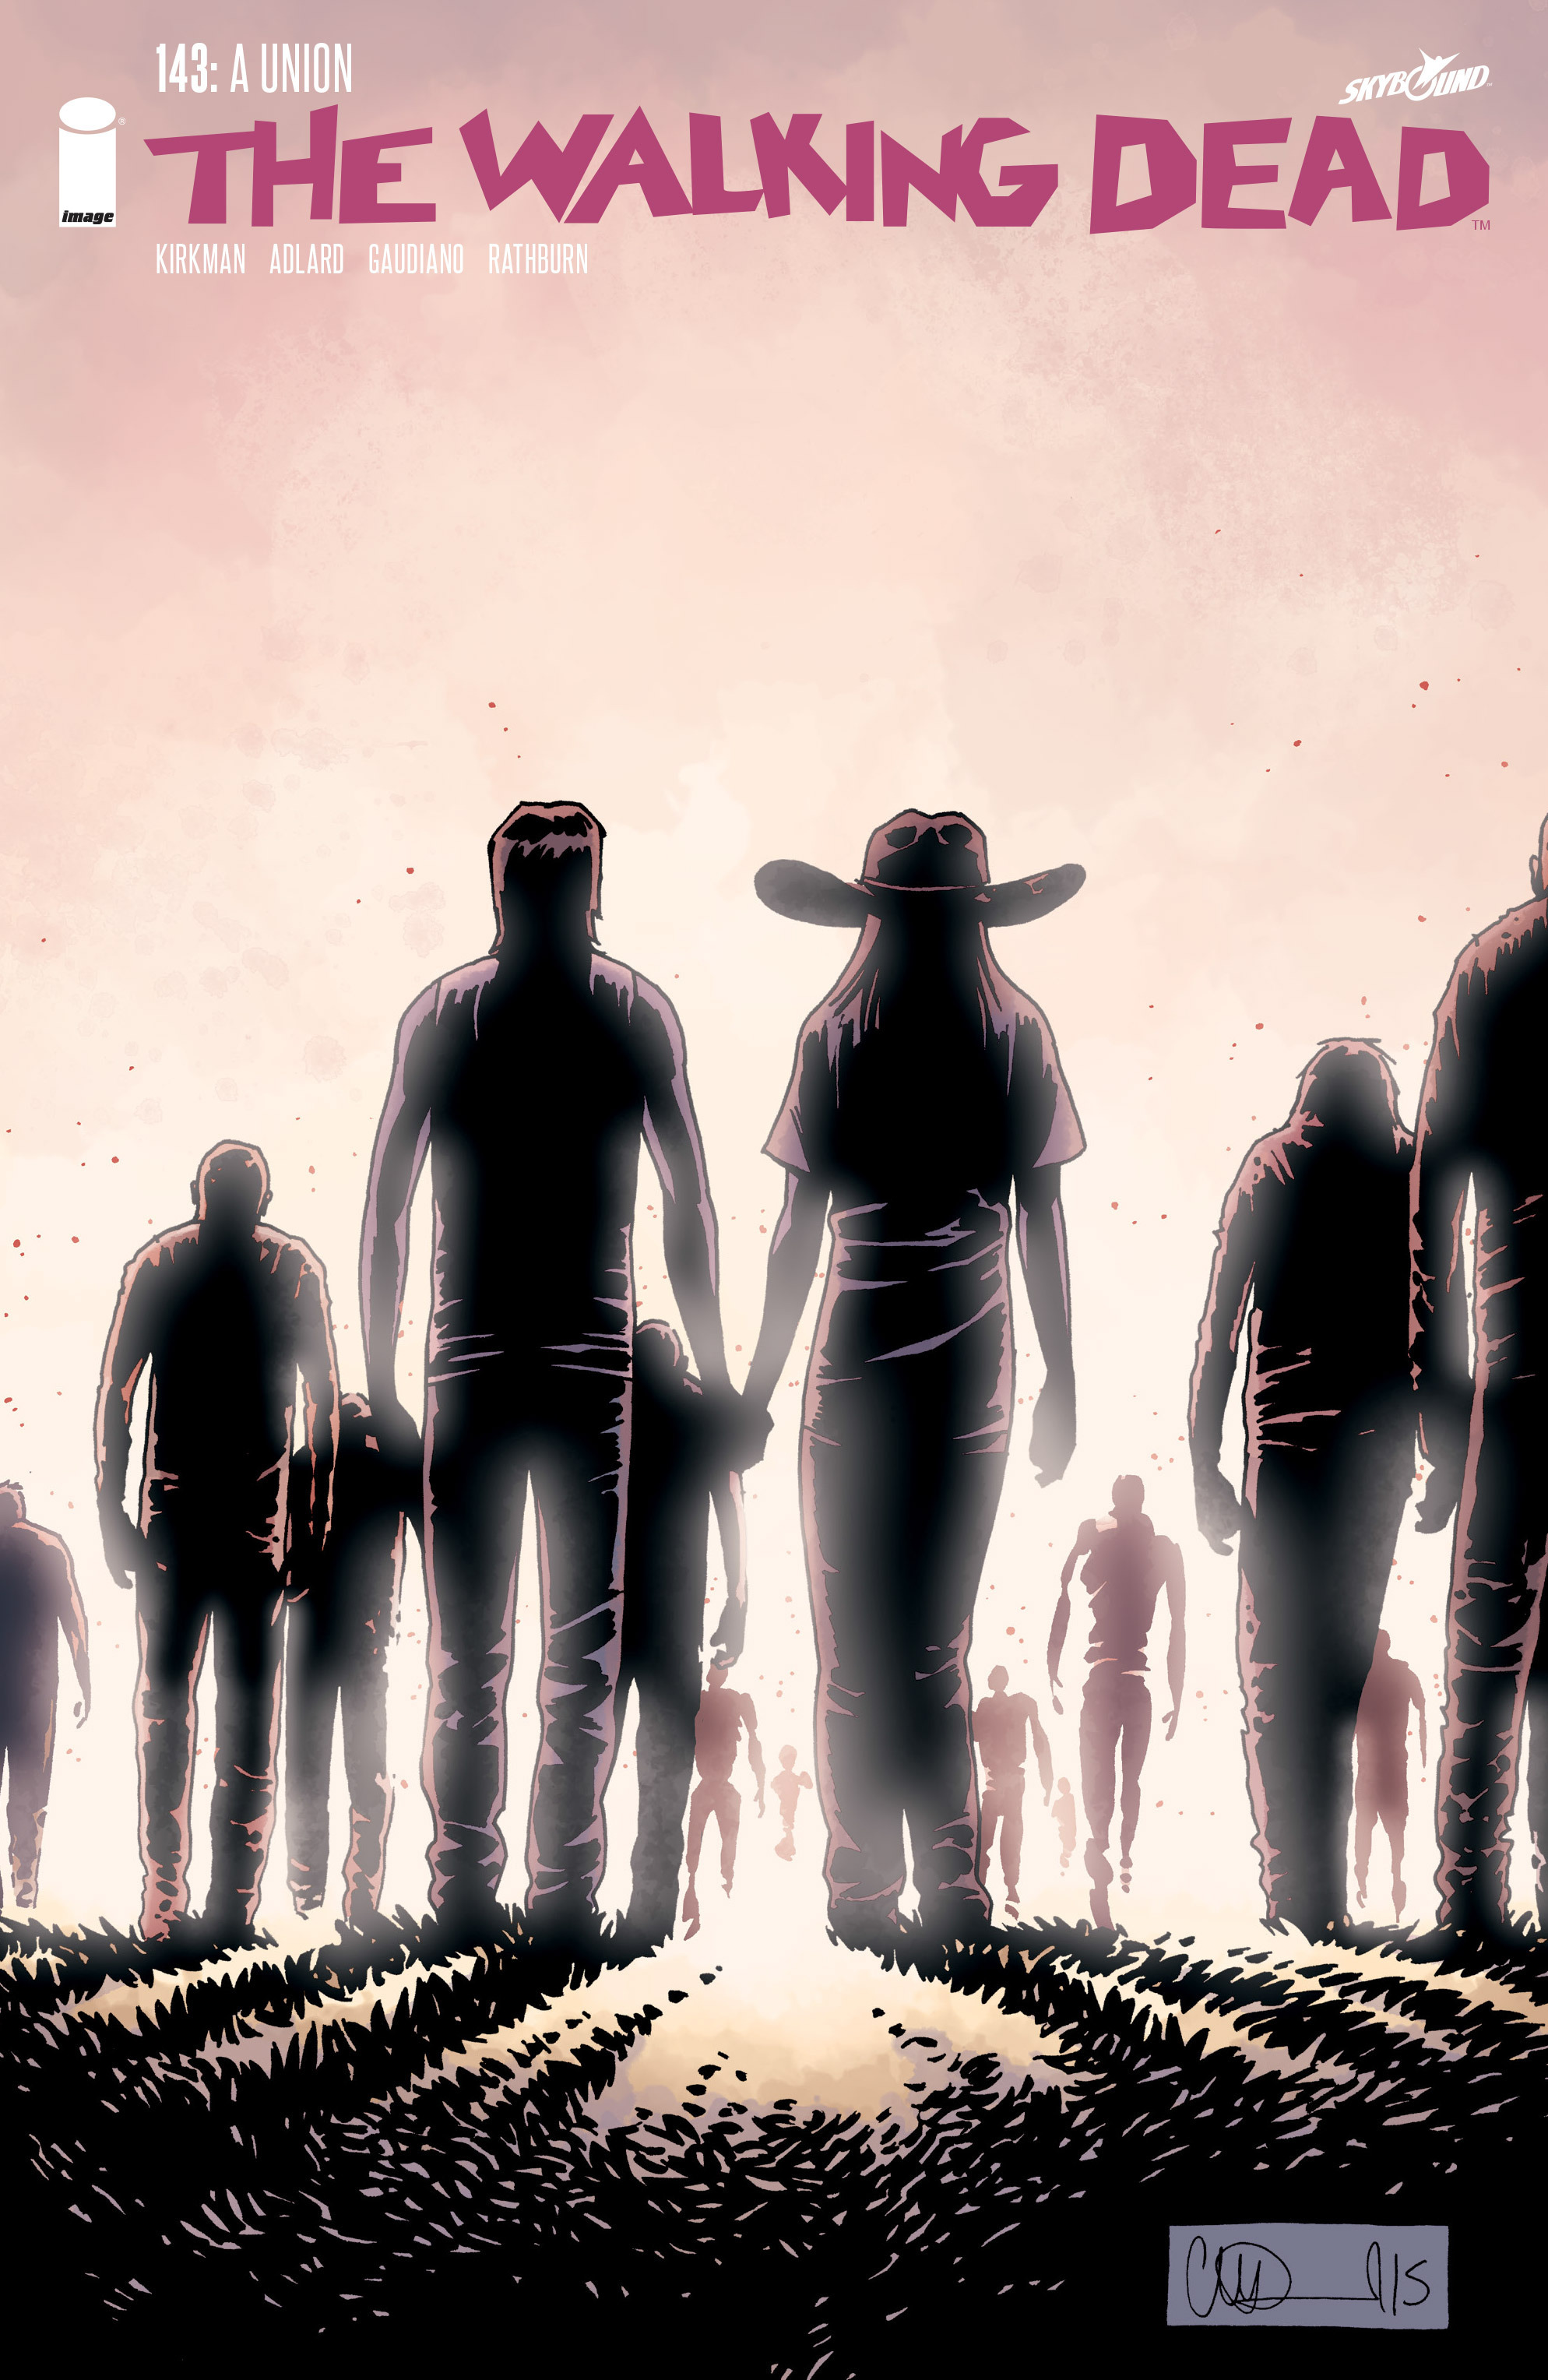 The Walking Dead 143 Page 1